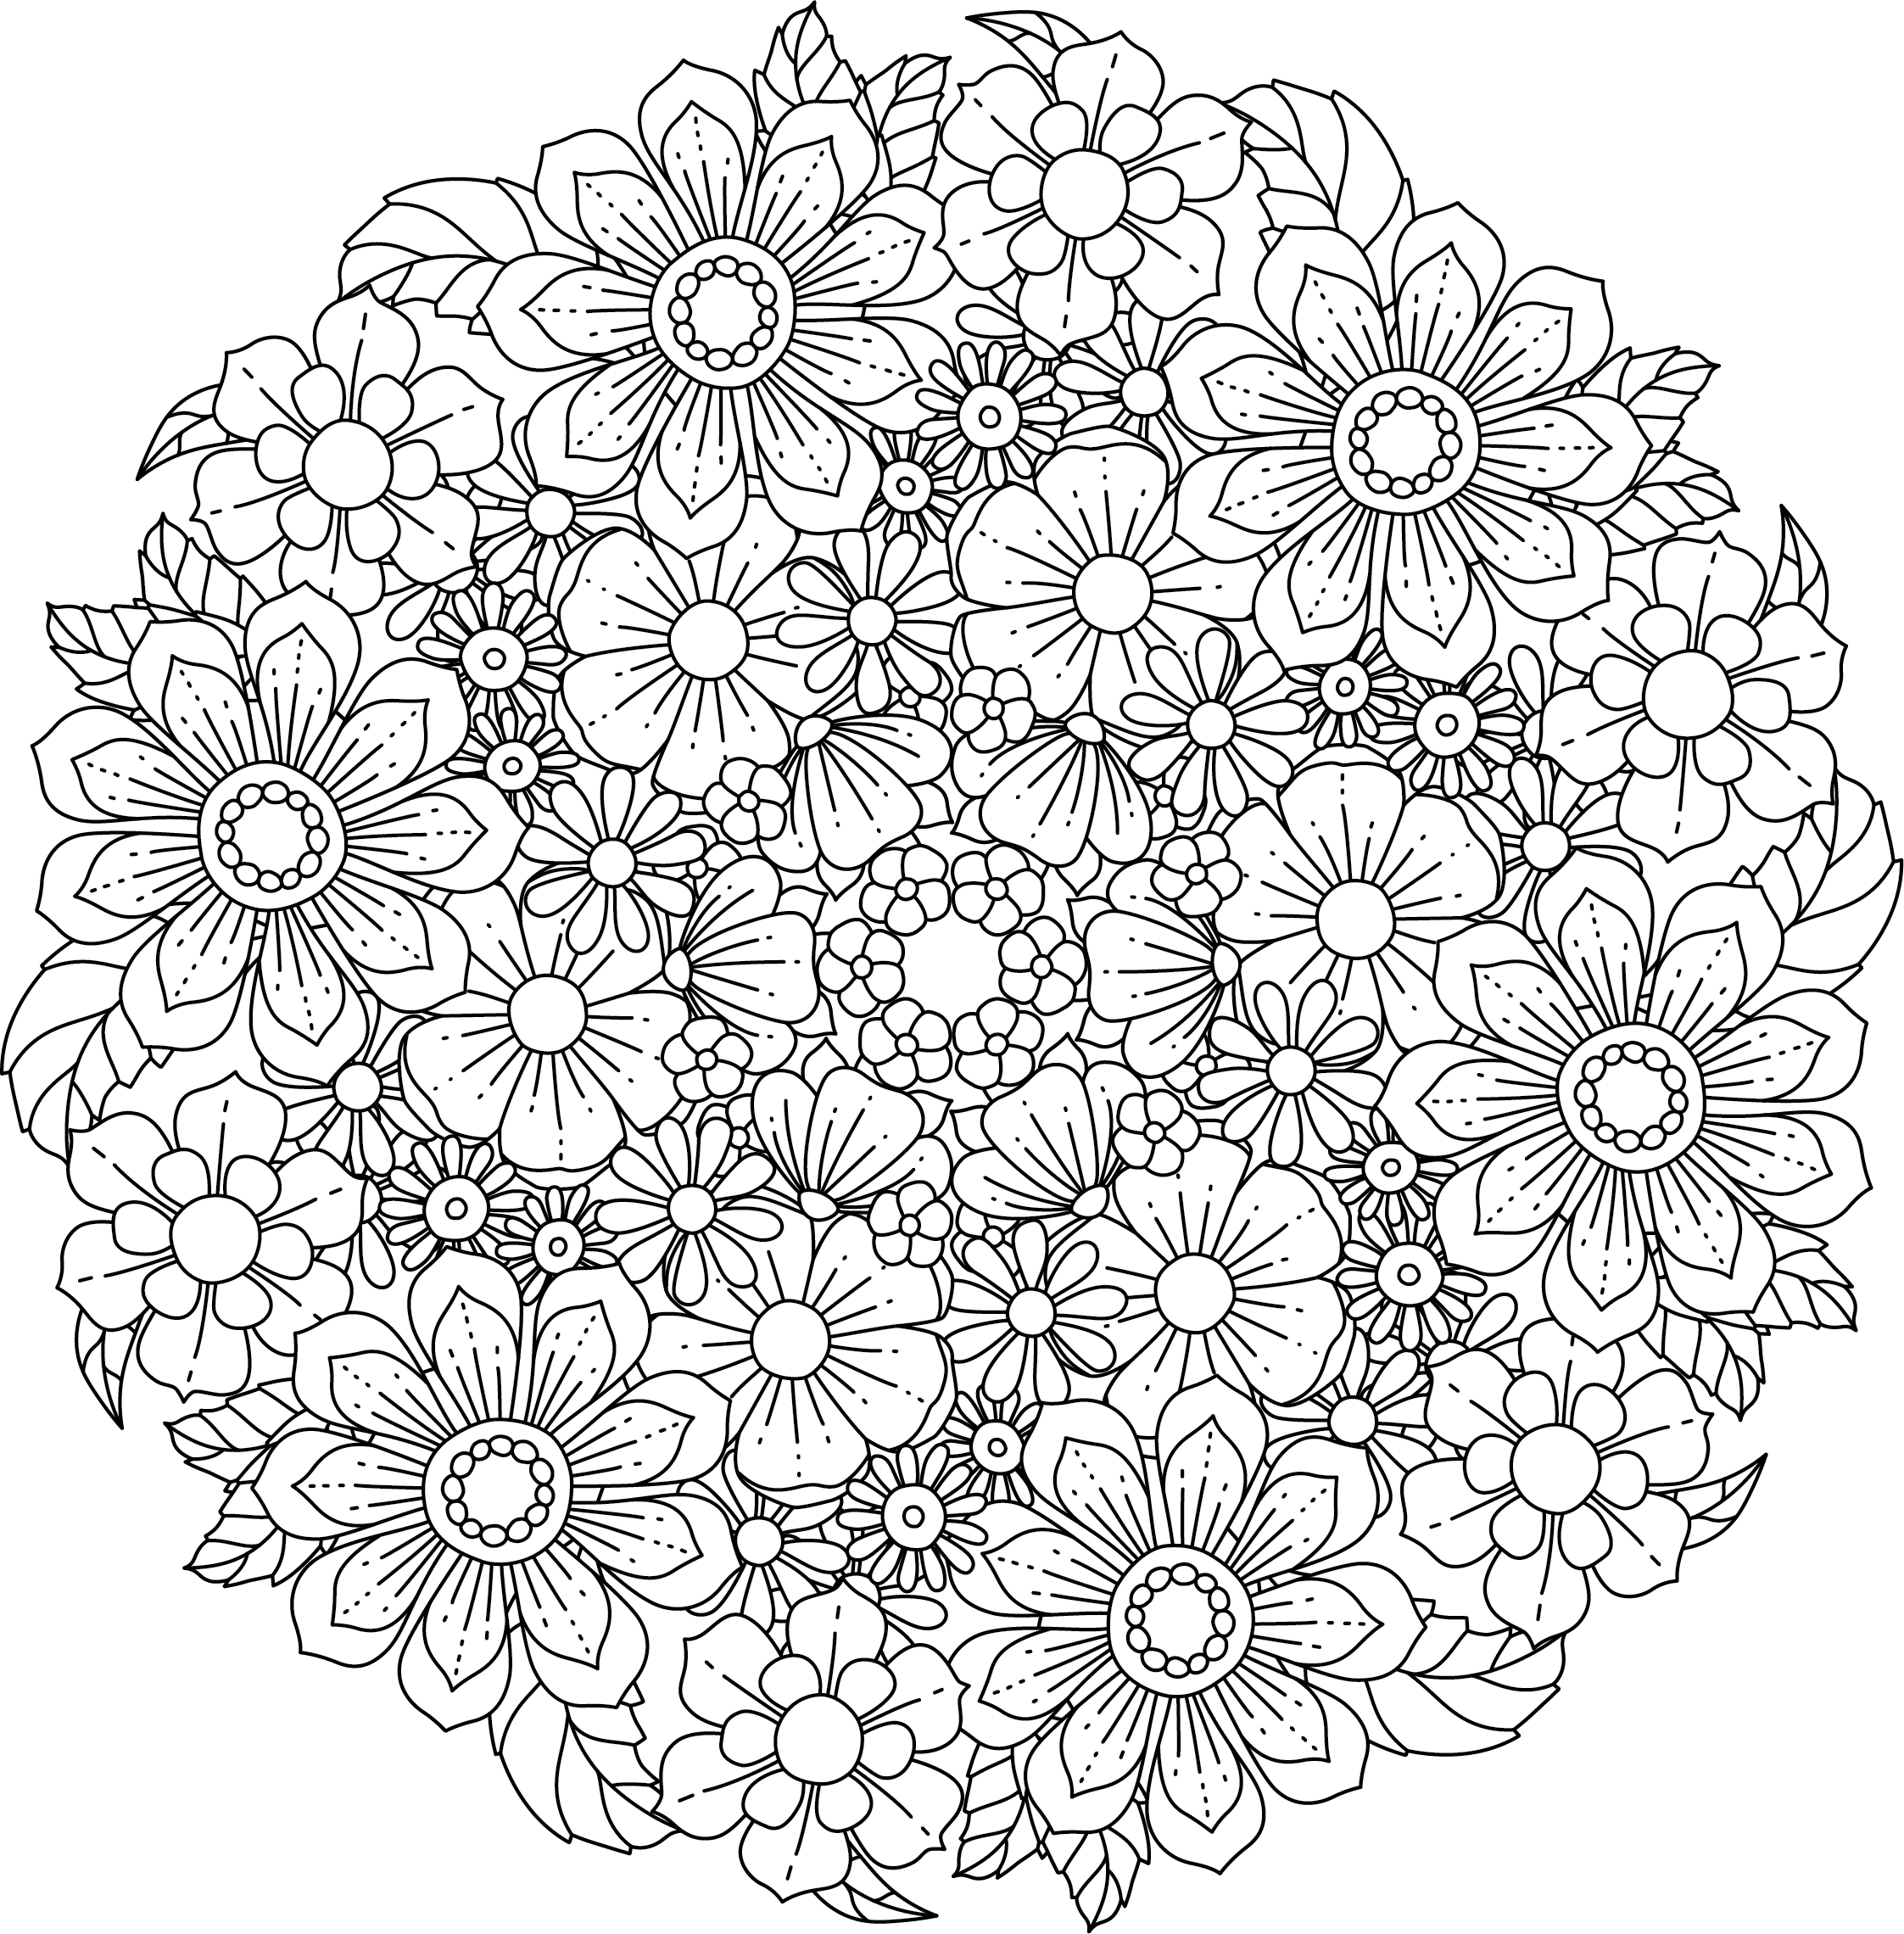 Mandala Monday Free Design To Download And Colour 2019 - 7